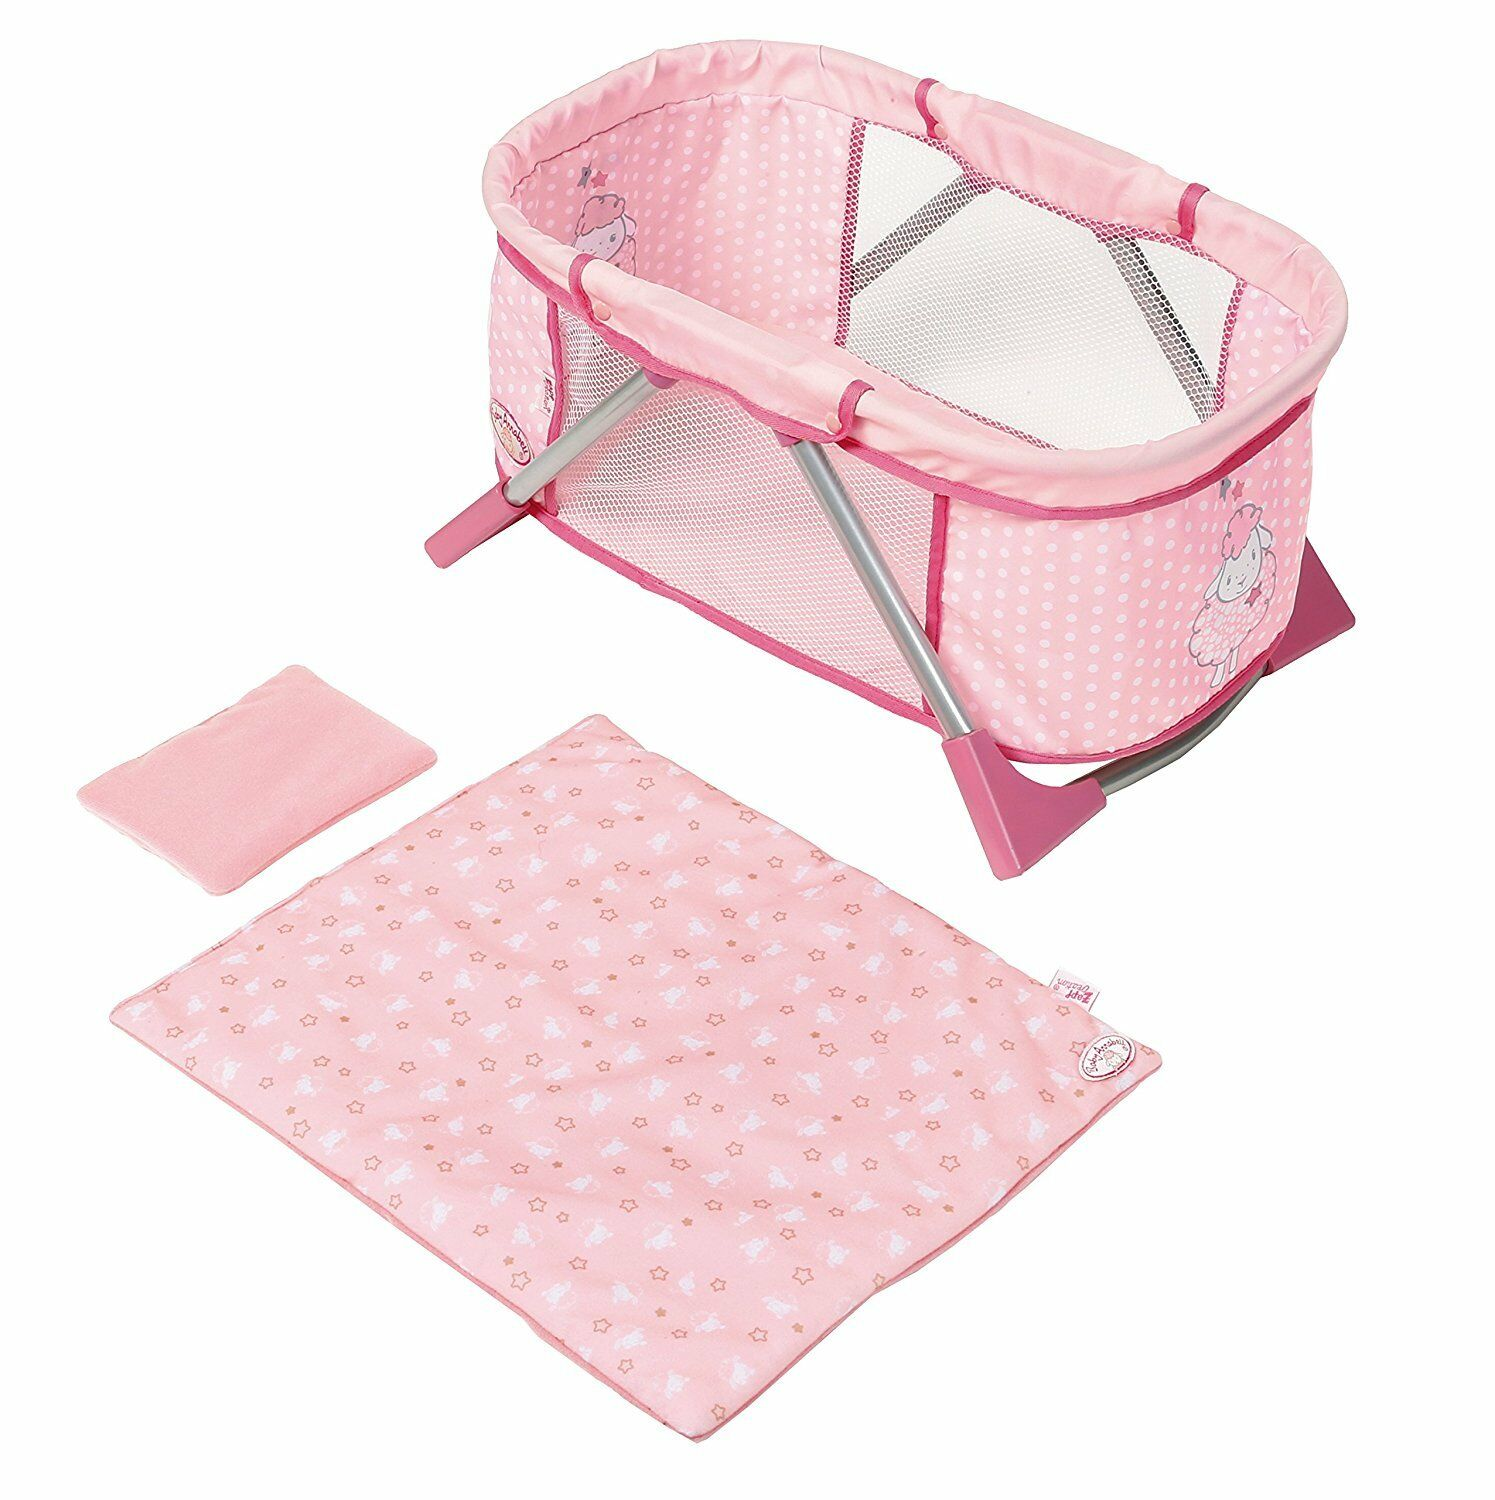 BABY ANNABELL TRAVEL BED COT FOR DOLLS BRAND NEW FOR AGES 3 YEARS AND UP